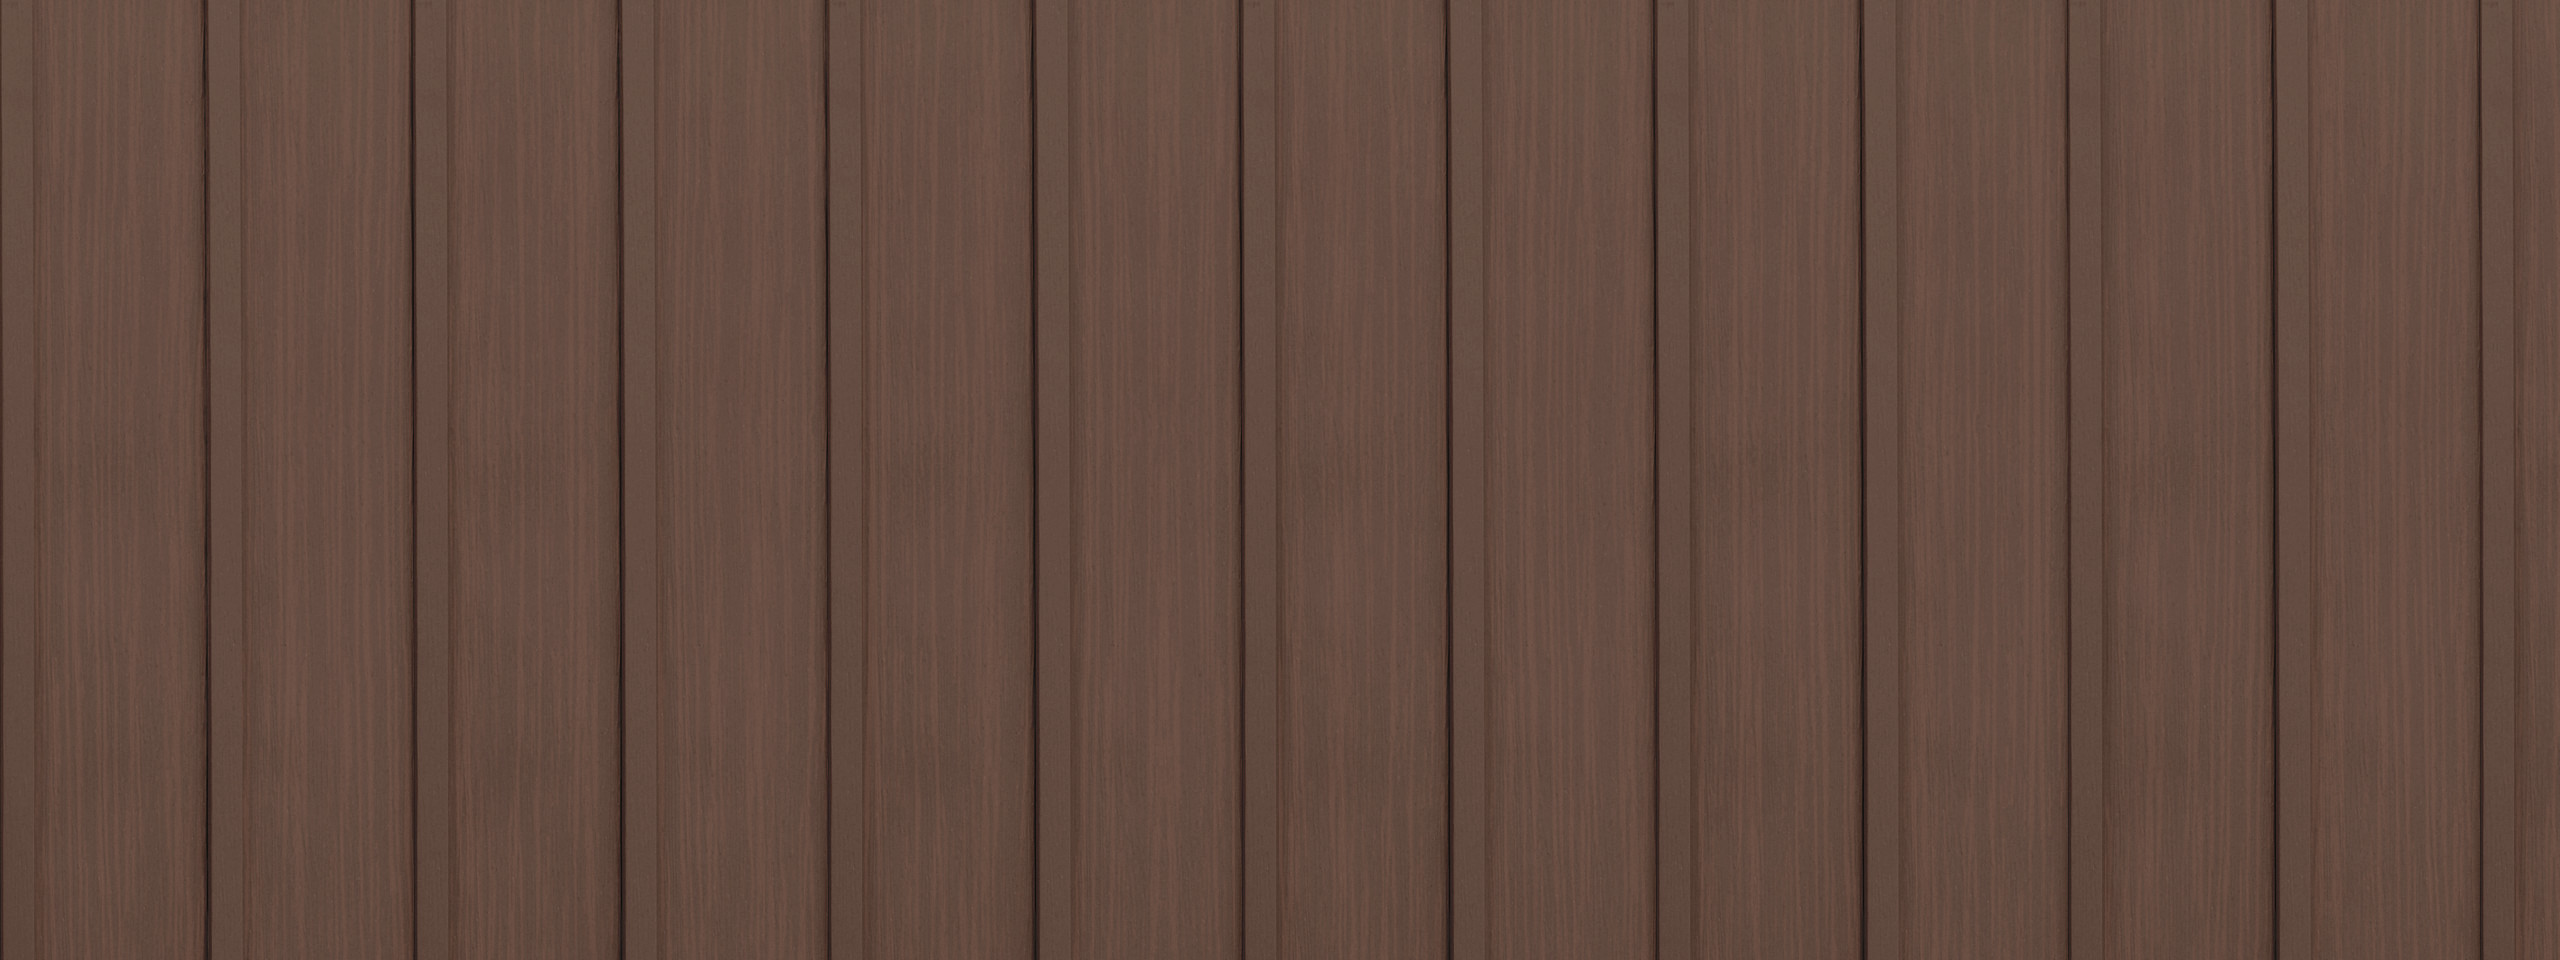 Entex vertical mahogany hd board and batten steel siding